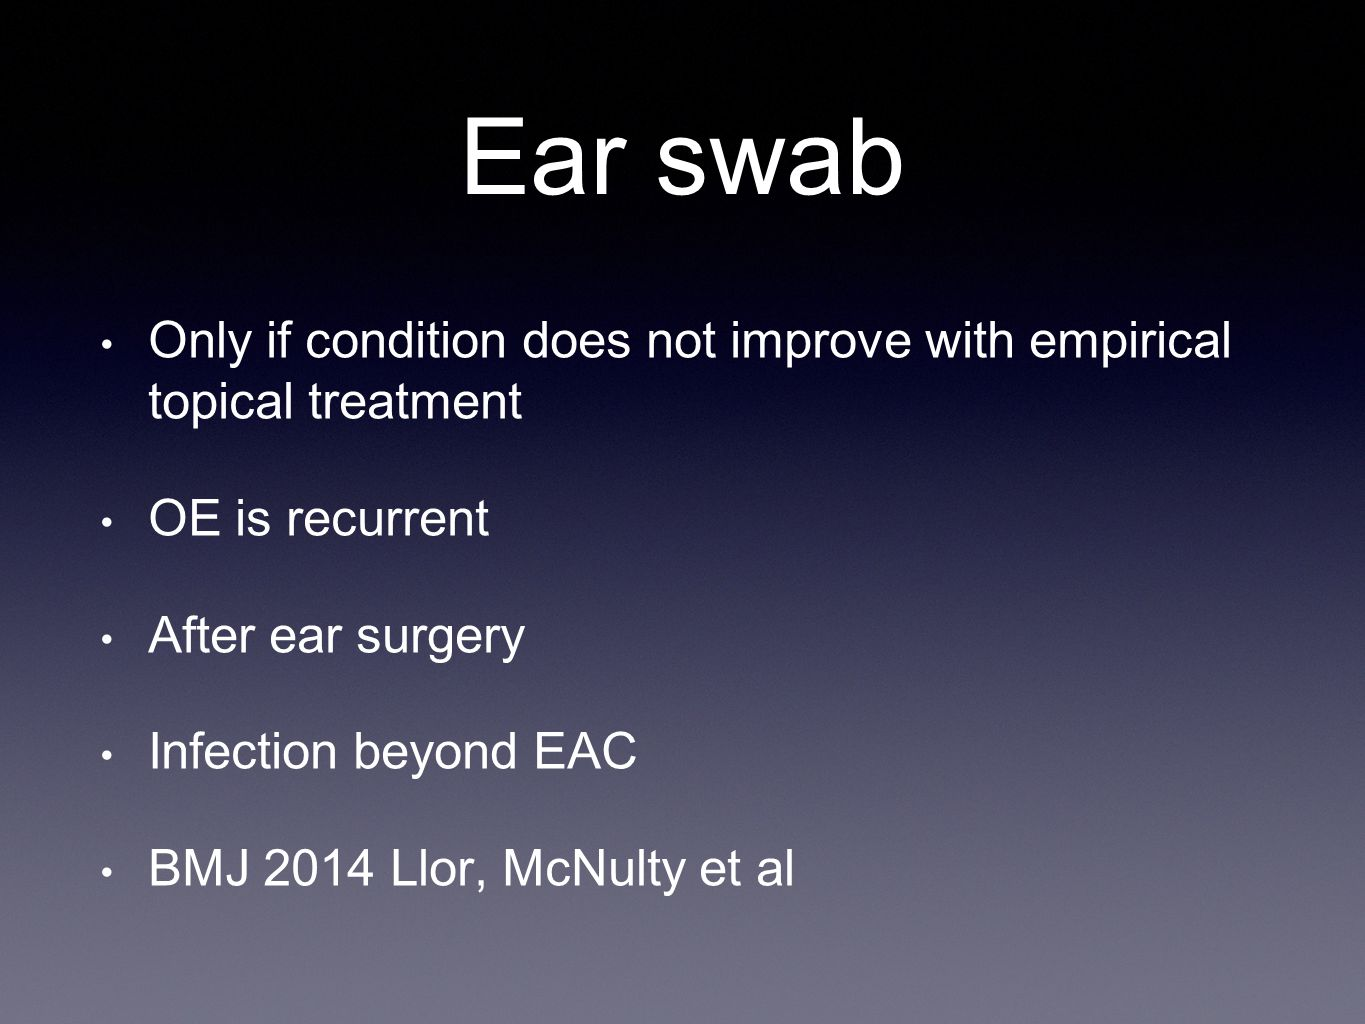 Ear swab Only if condition does not improve with empirical topical treatment. OE is recurrent. After ear surgery.